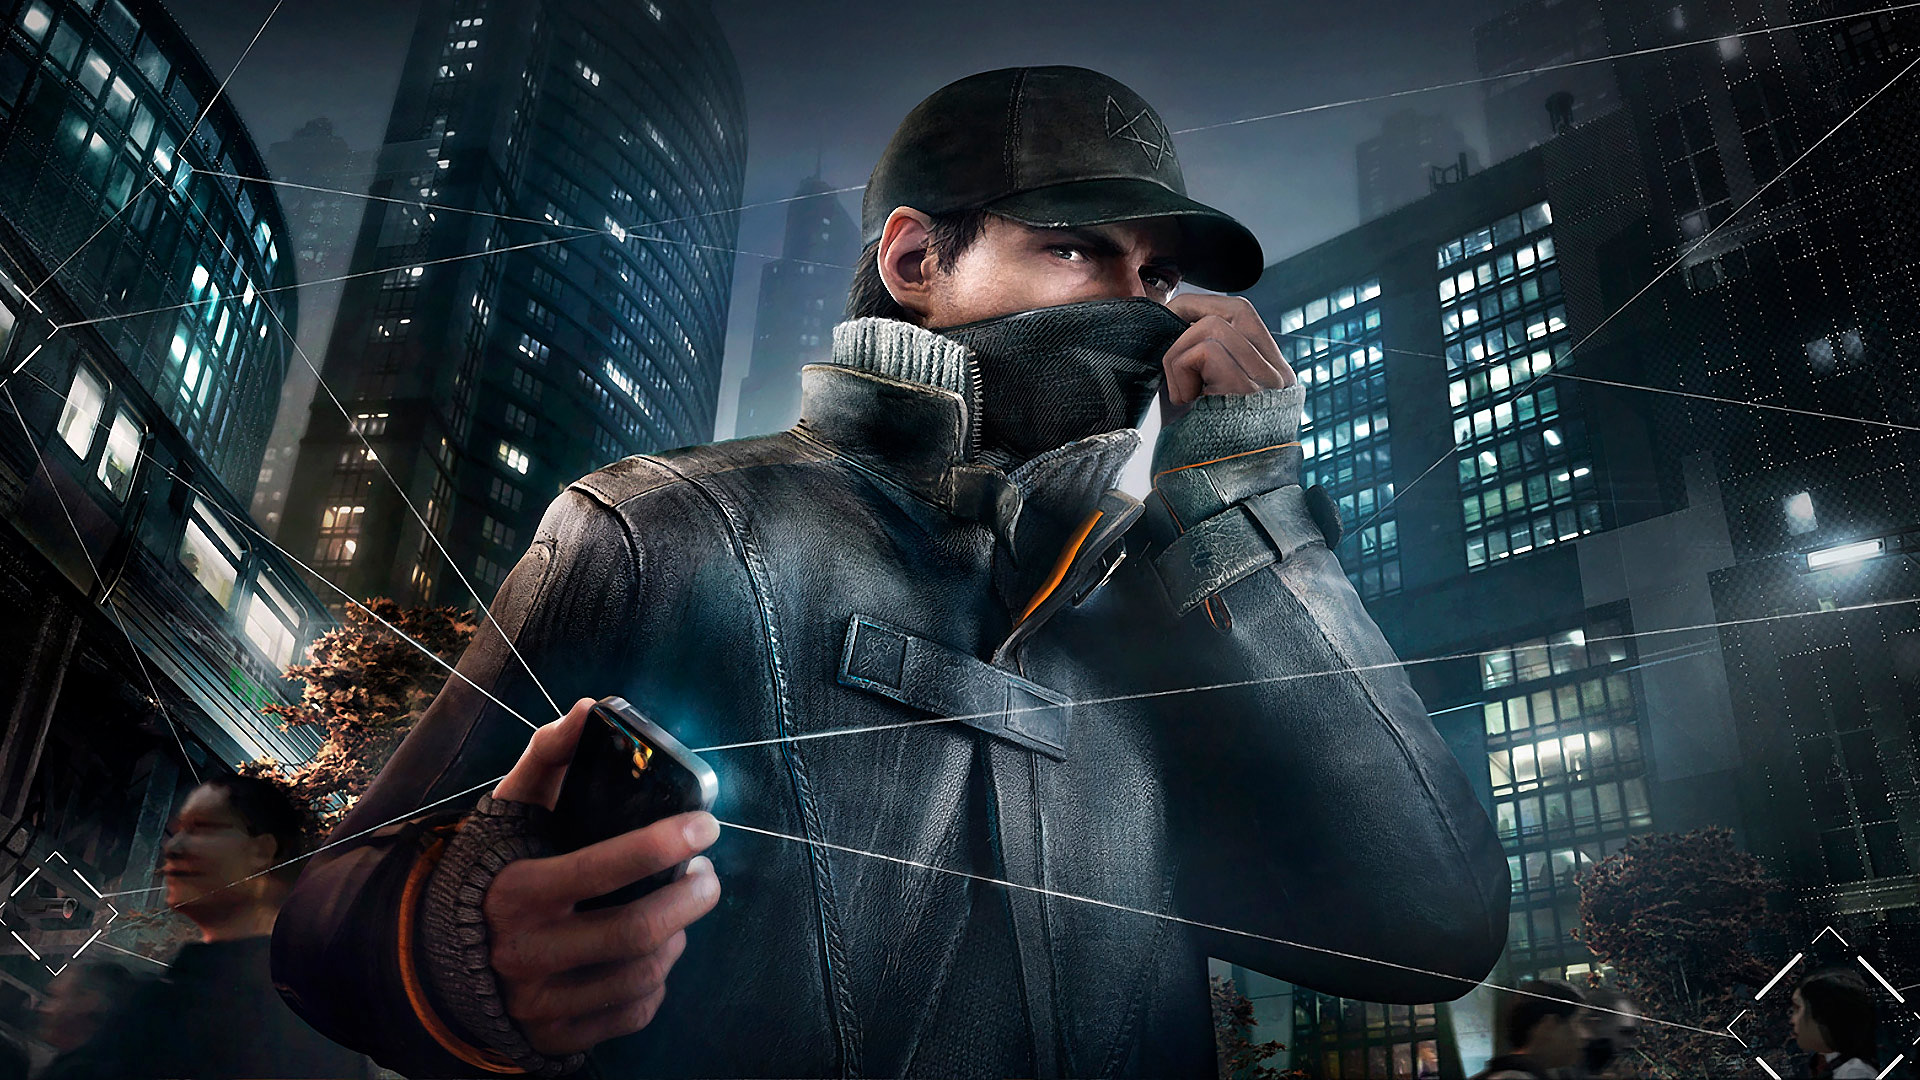 watch_dogs_by_acersense-d6brt45.jpg